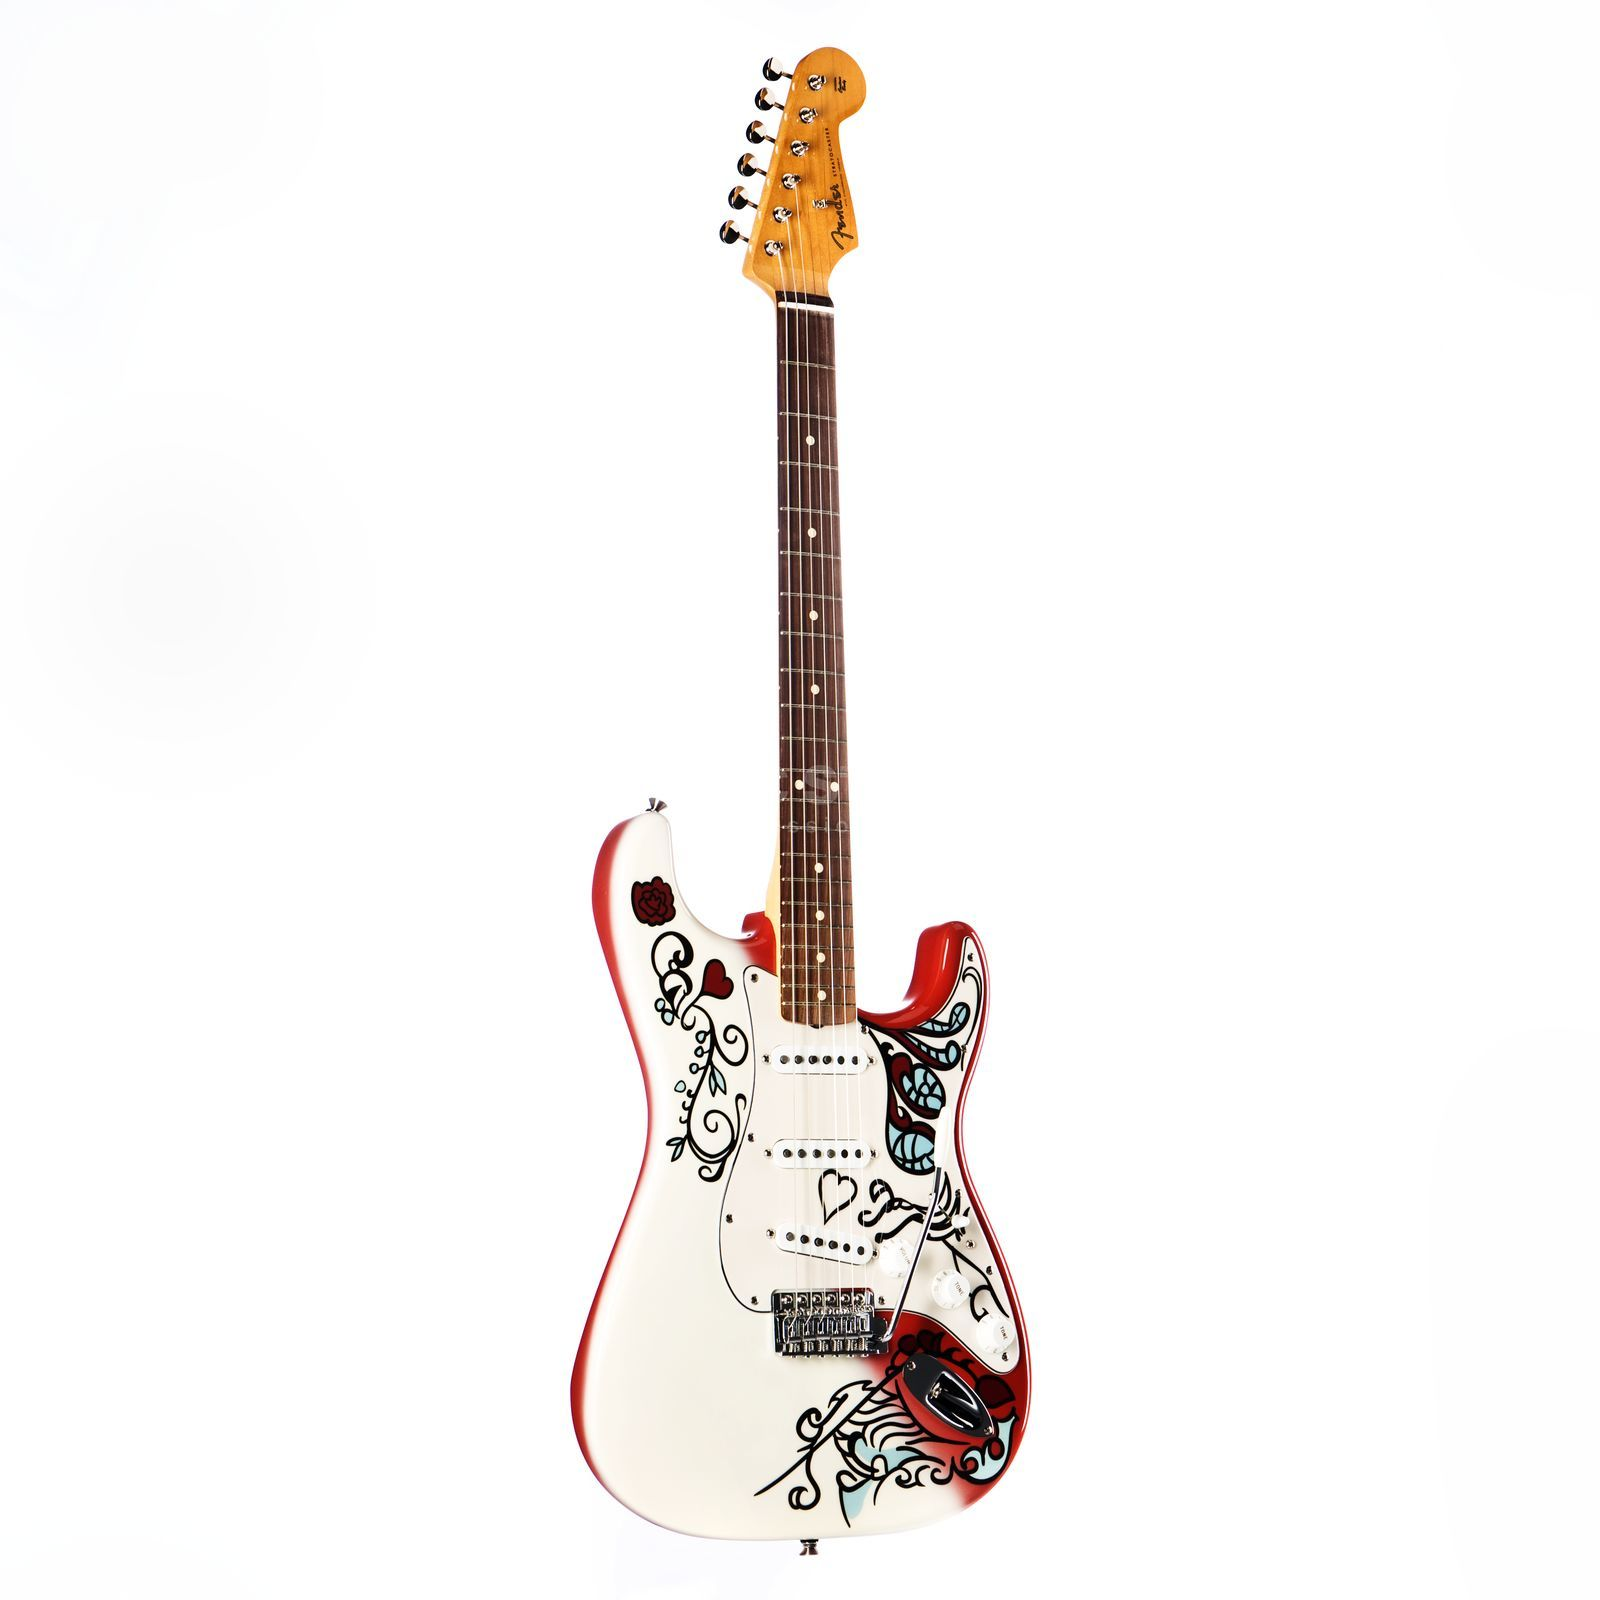 fender jimi hendrix monterey stratocaster. Black Bedroom Furniture Sets. Home Design Ideas